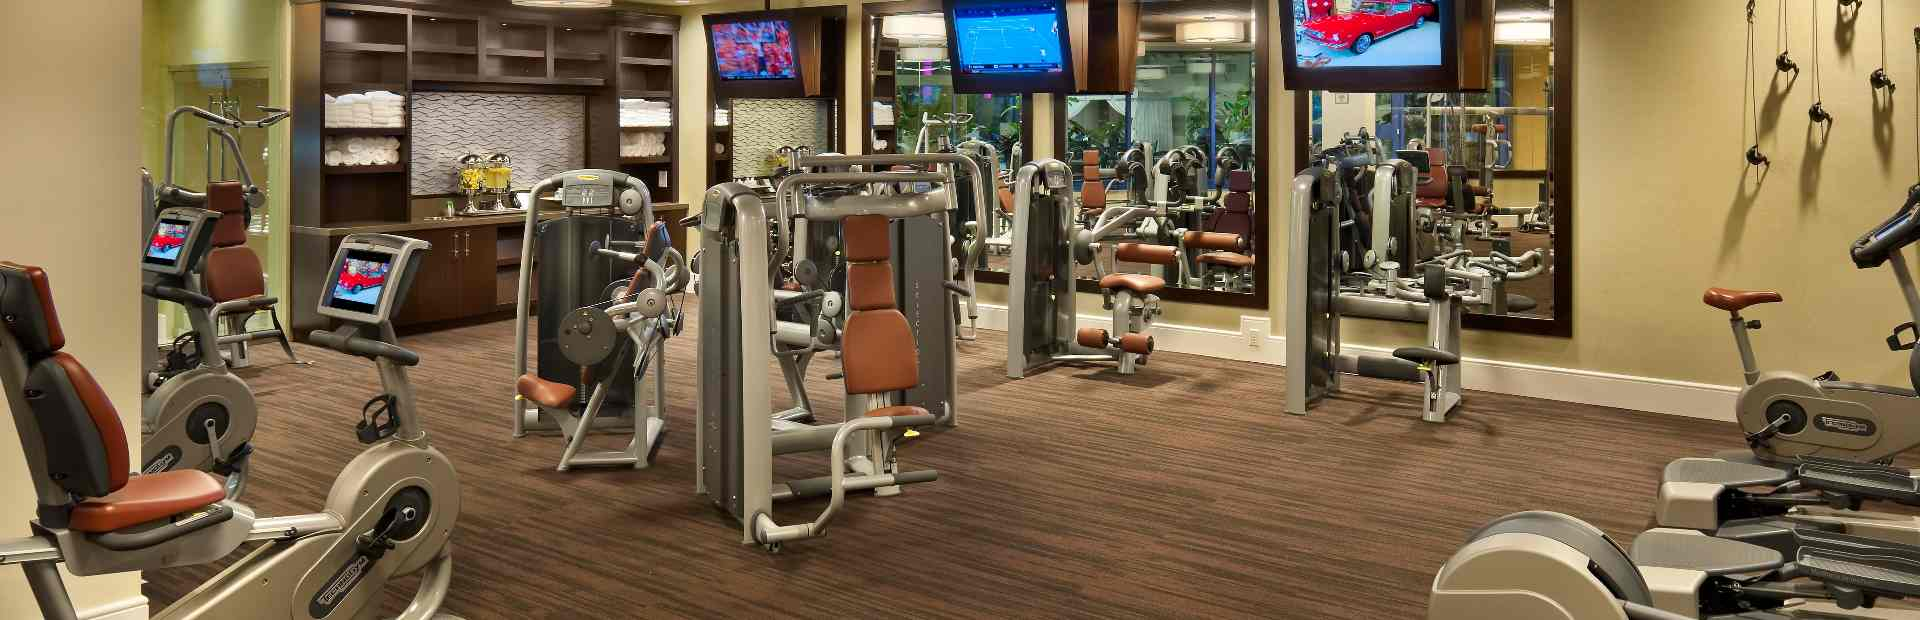 Fitness Center at Spa Atlantis